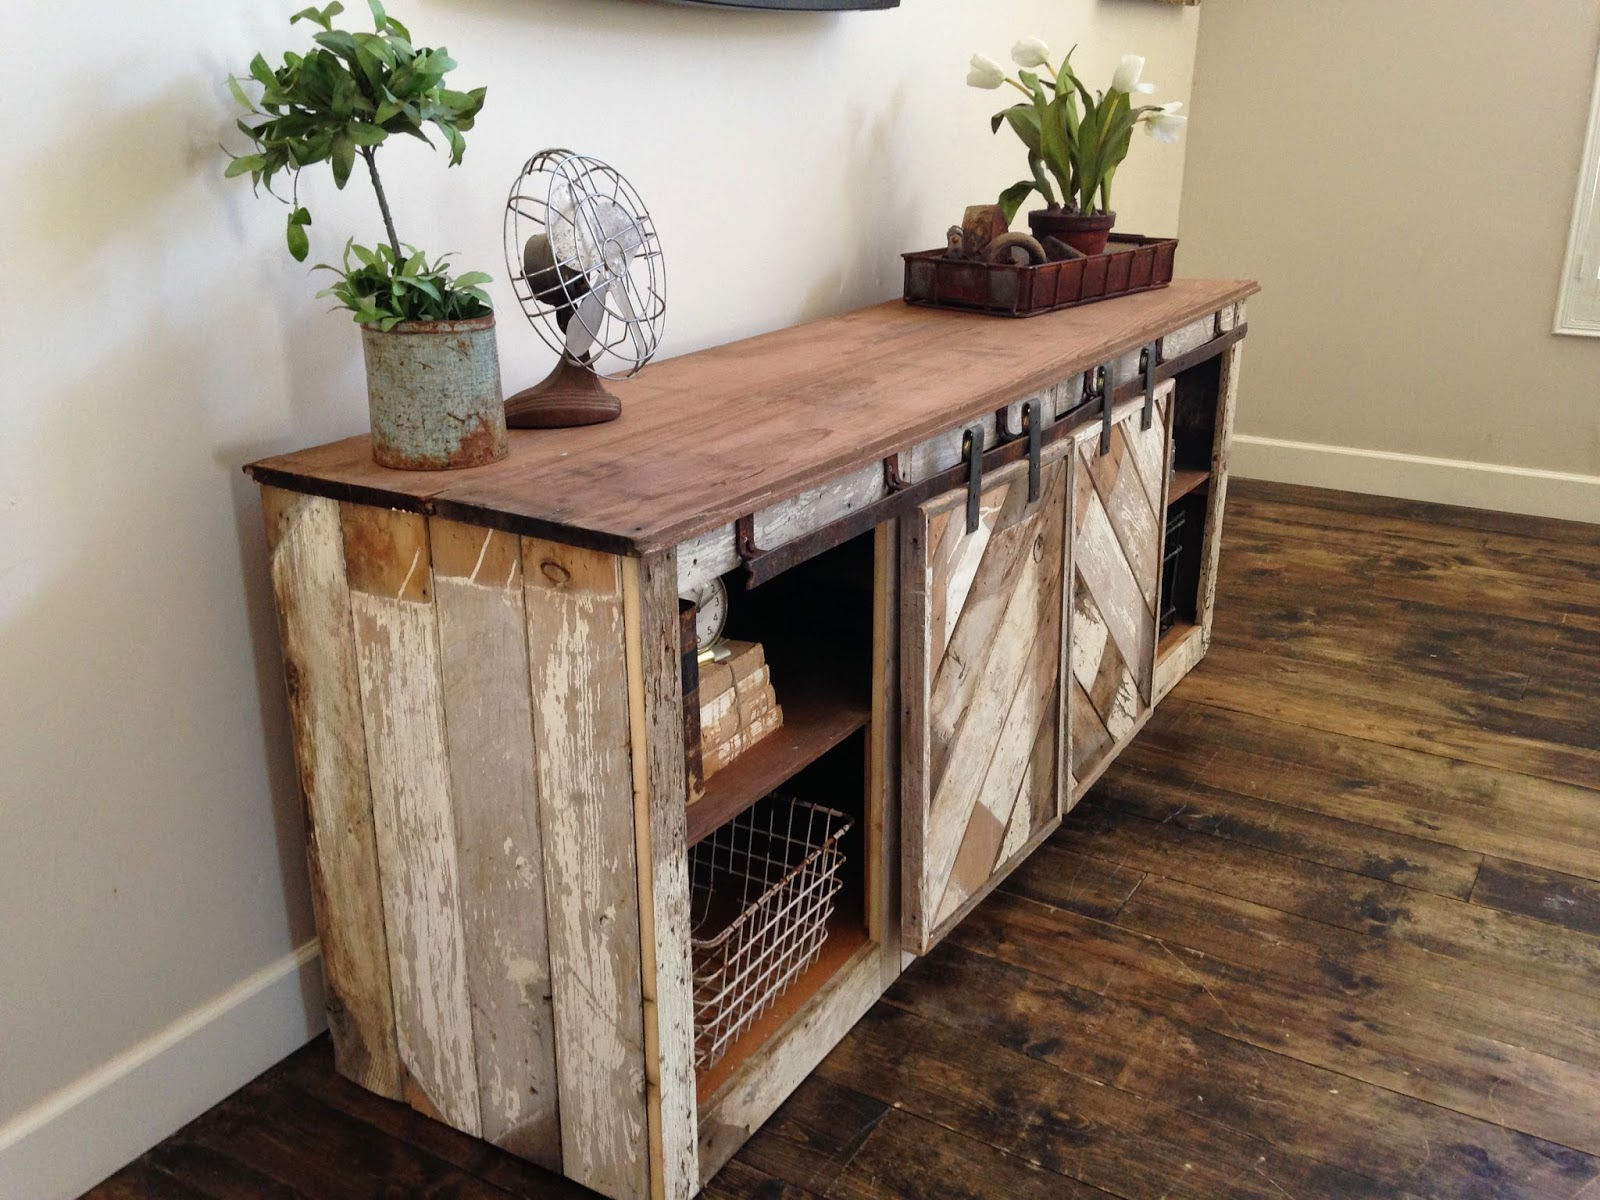 How to make a sofa table from 1 x 6 lumber - Rustic Distressed Barn Door Sliding Console Furniture